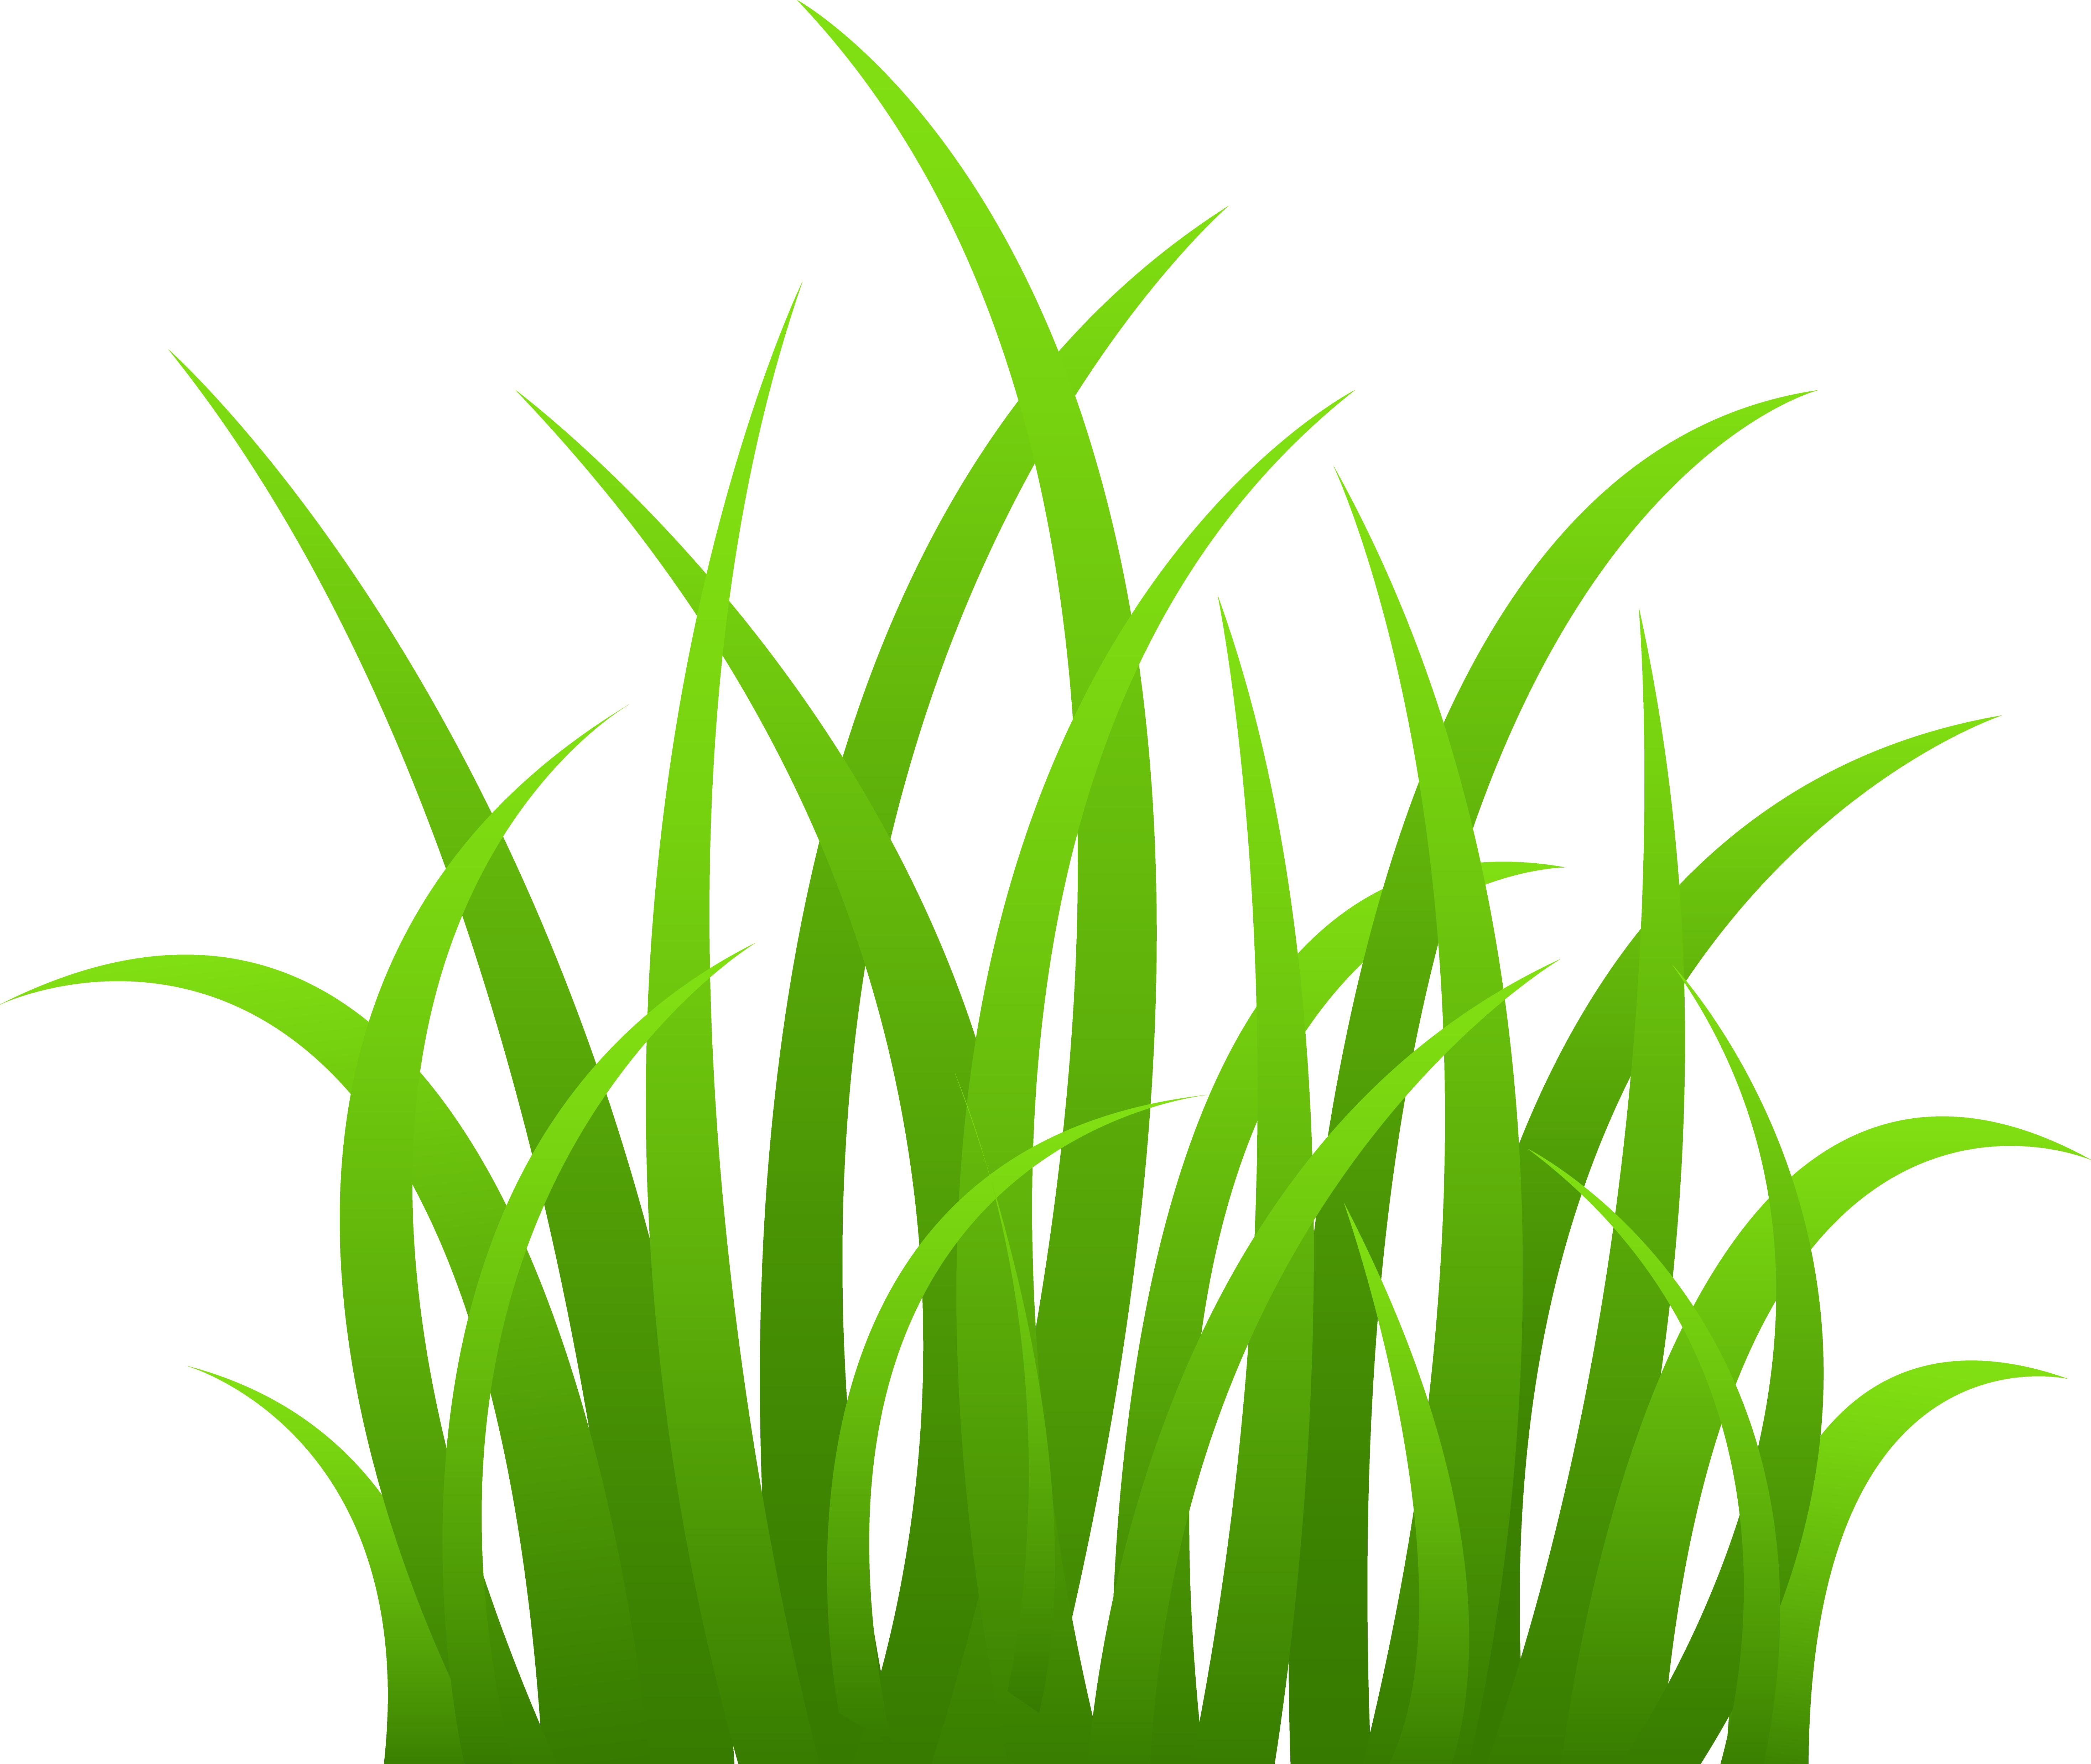 Tufts of grass clipart png black and white download Free Grass Cliparts, Download Free Clip Art, Free Clip Art on ... png black and white download